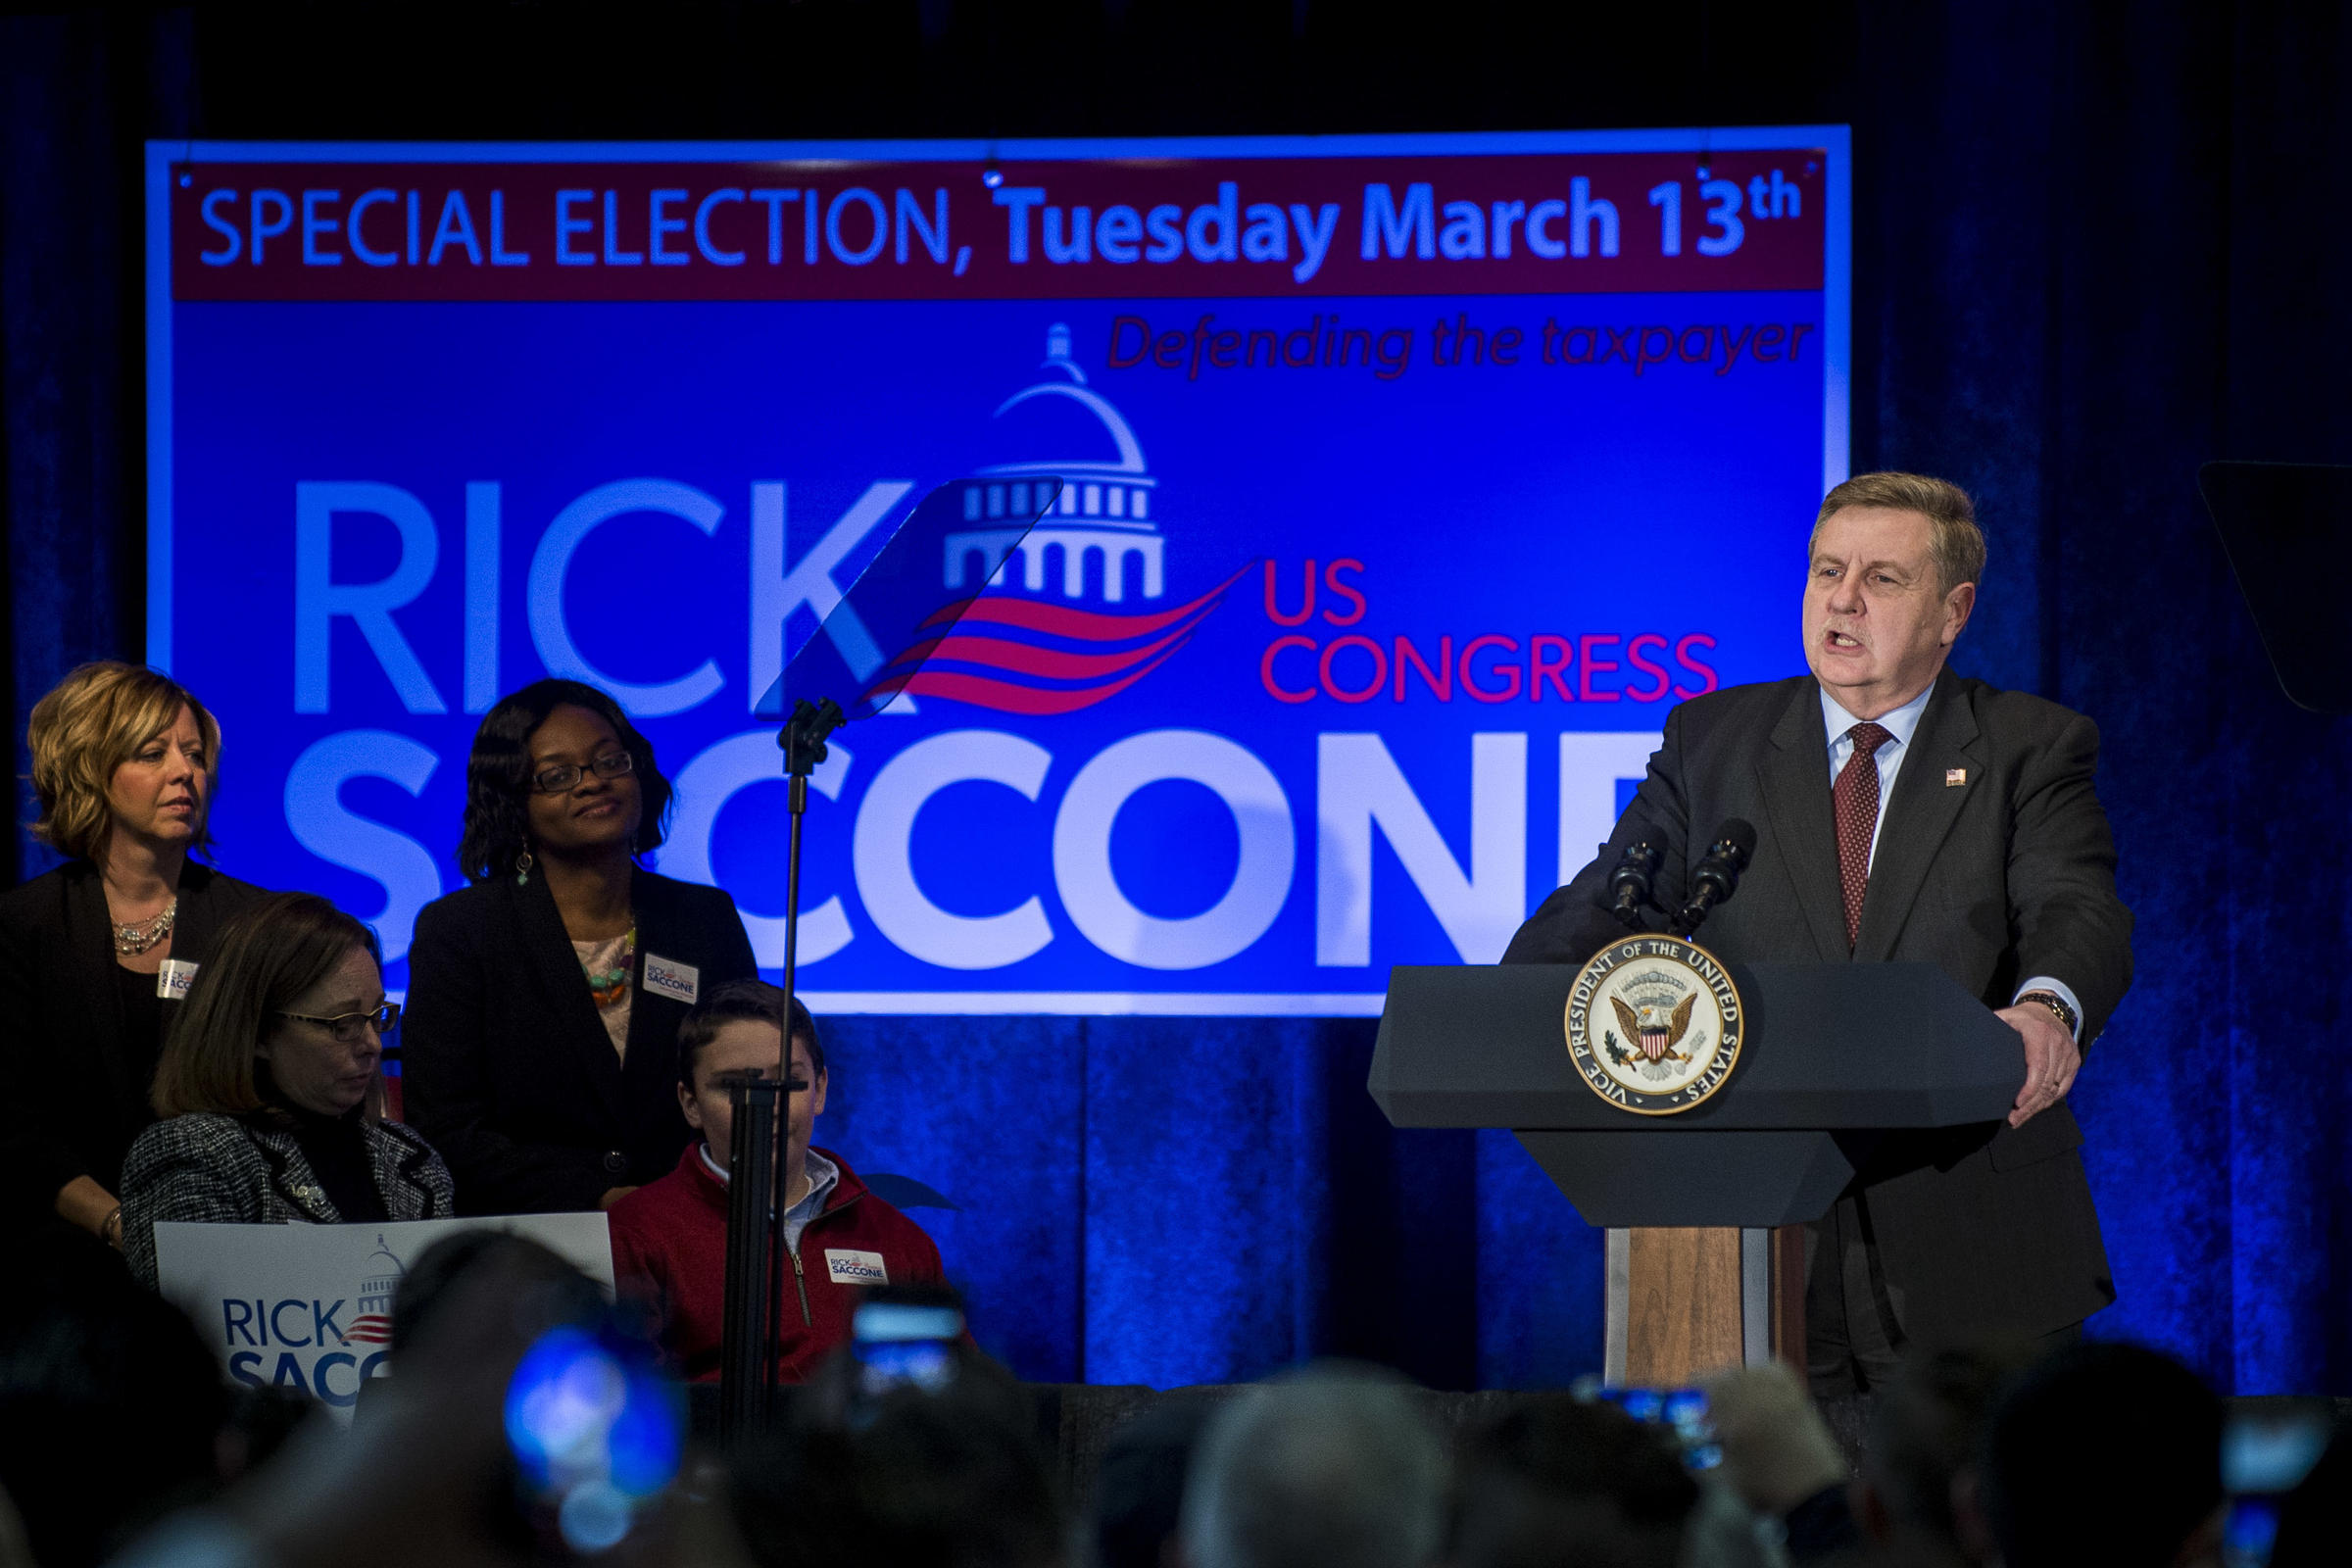 Trump stumps for Republican Rick Saccone in Pennsylvania